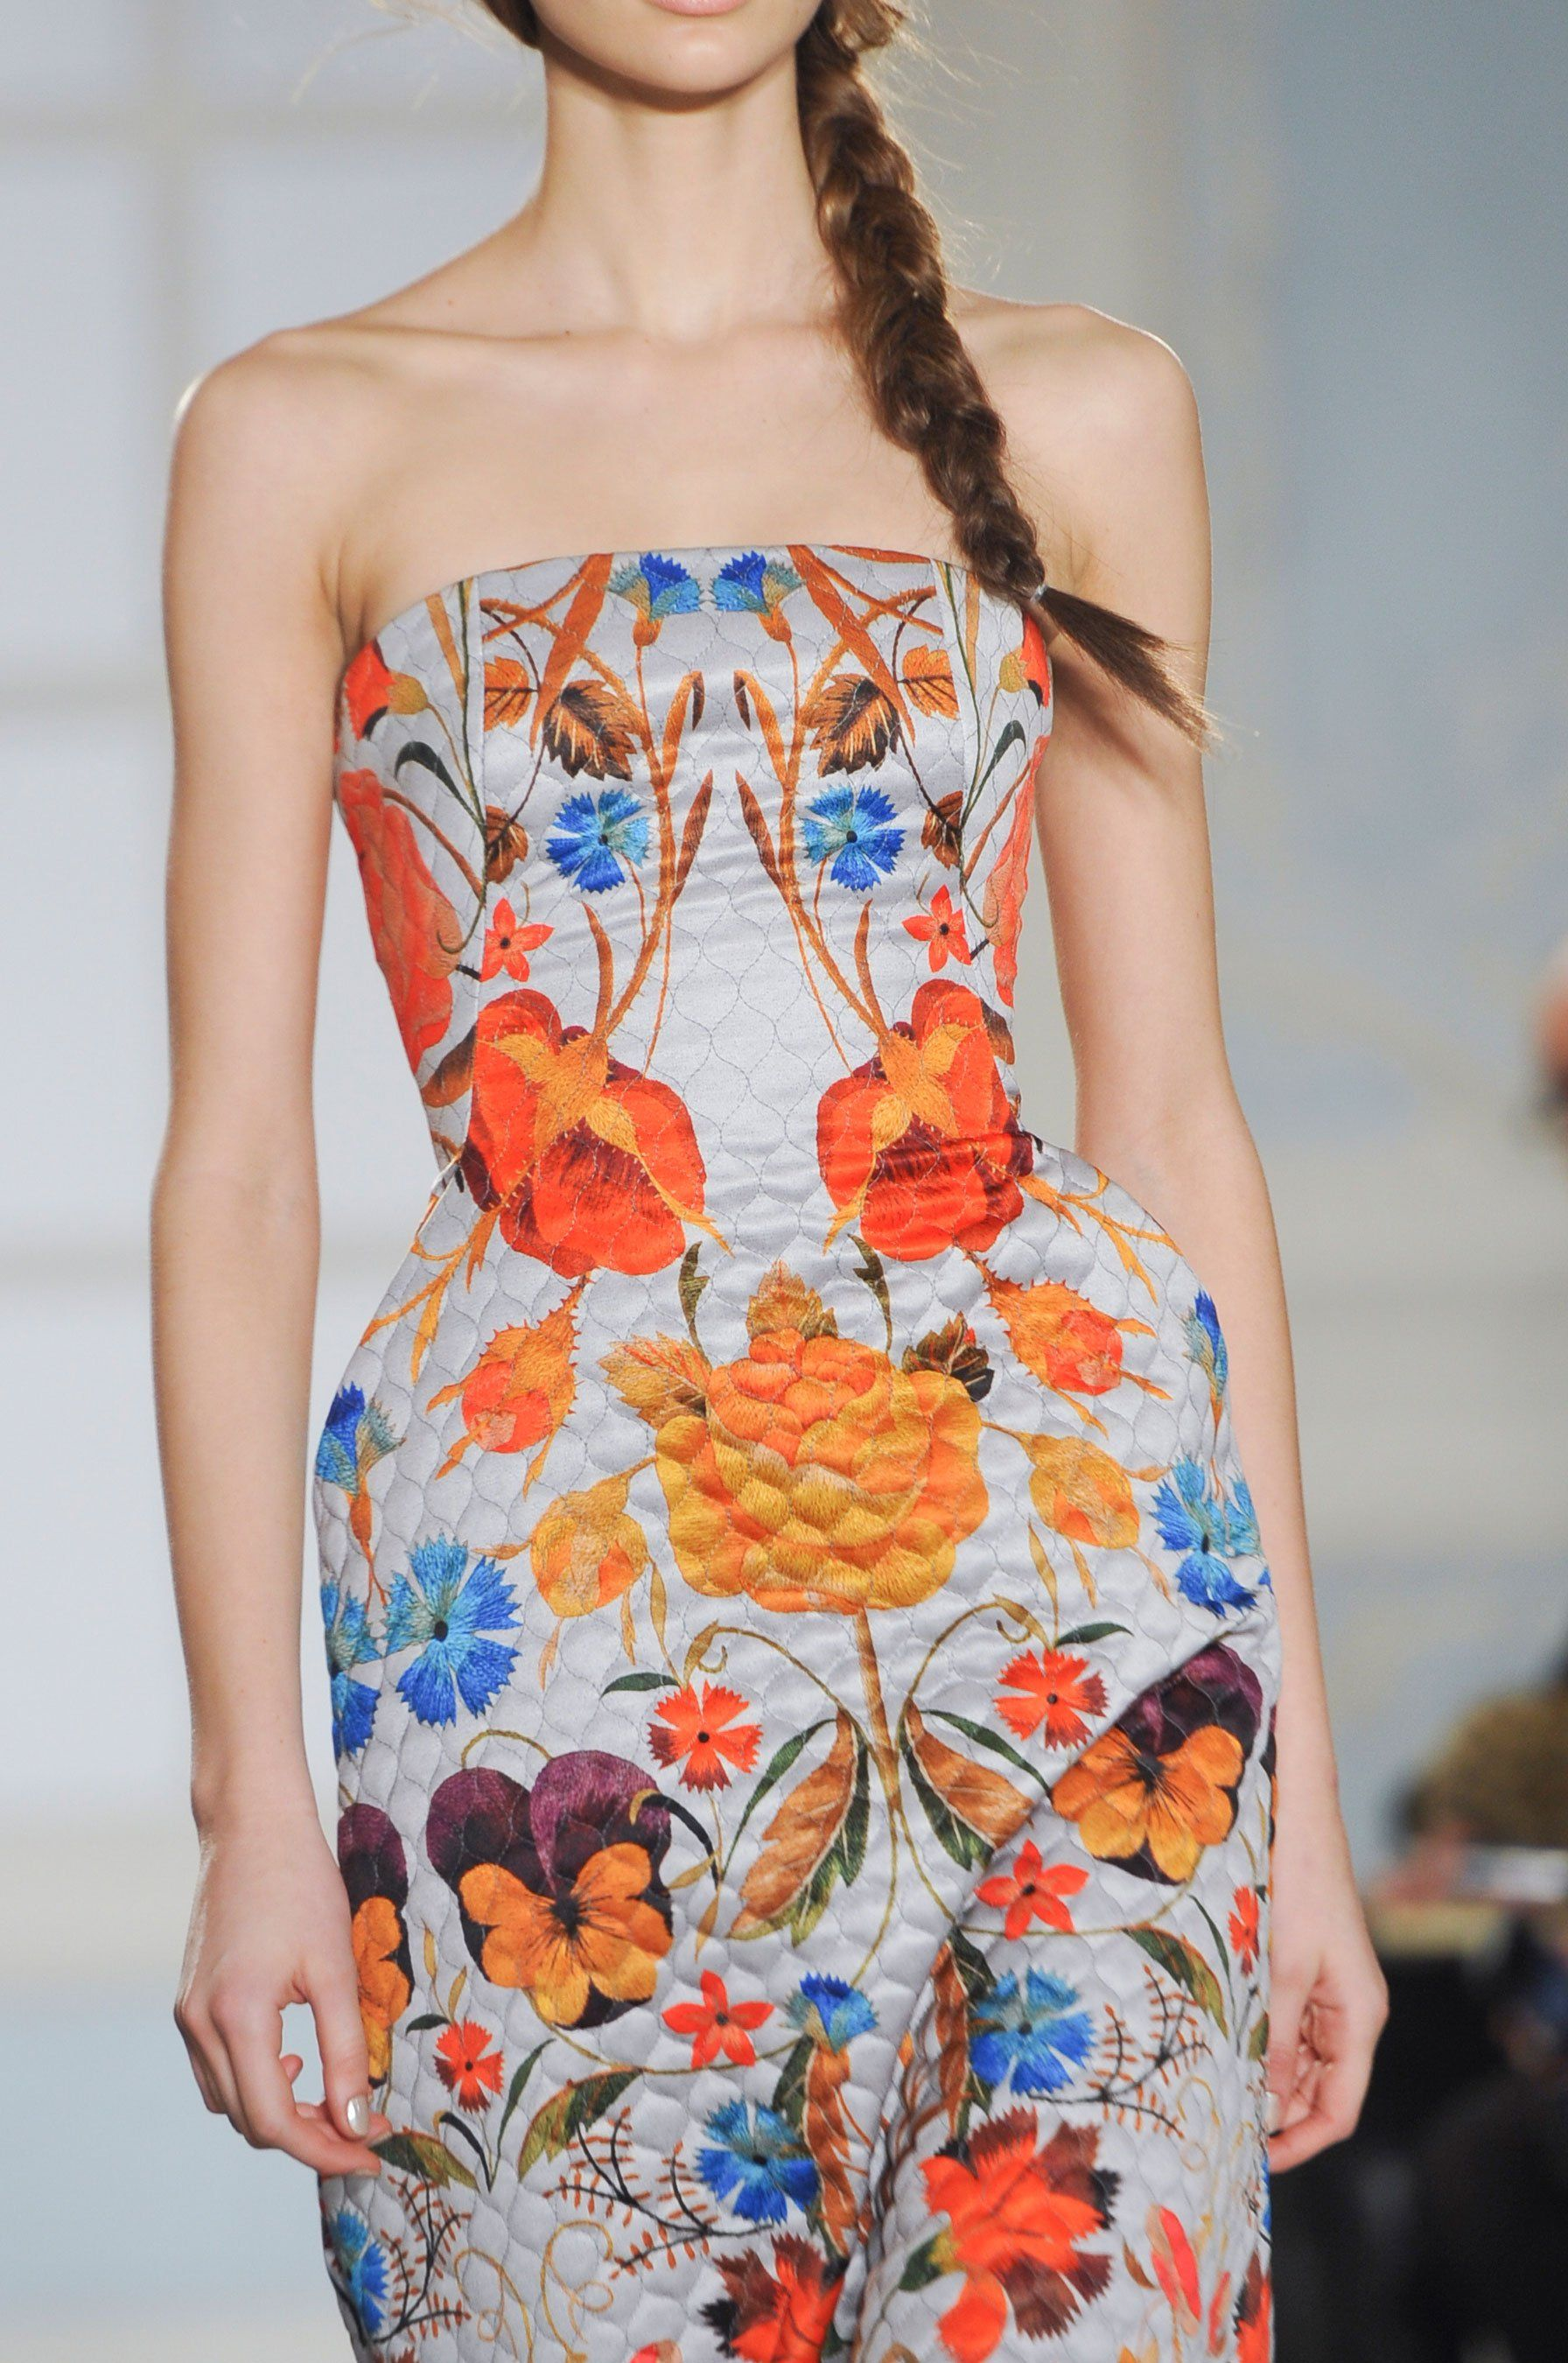 Temperley London Details A/W '14